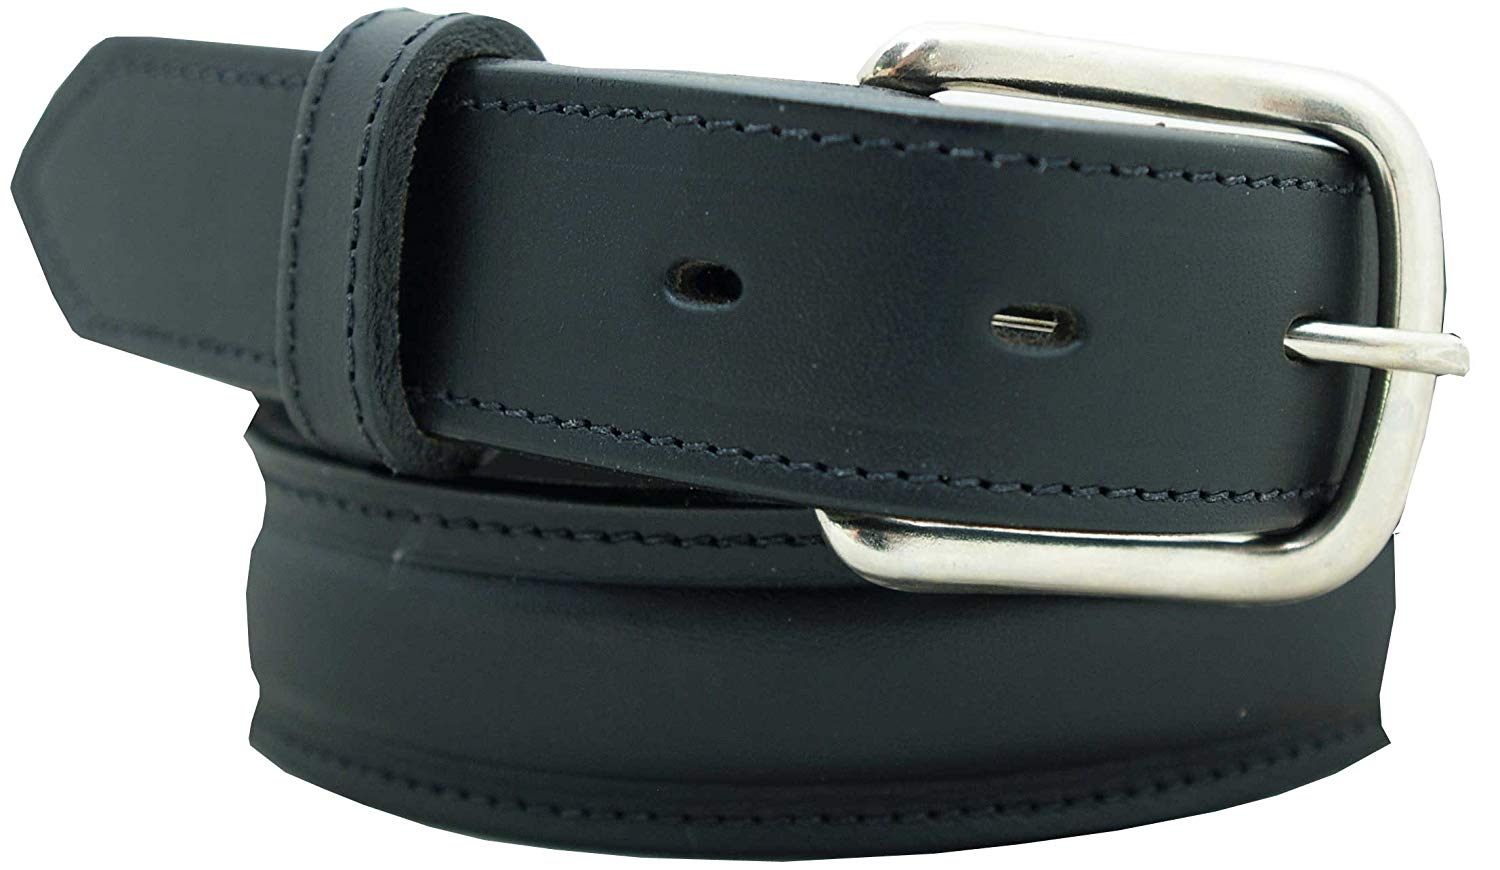 Men's Dress Belt - 1 1/4 English Bridle Leather Raised Dress Belt